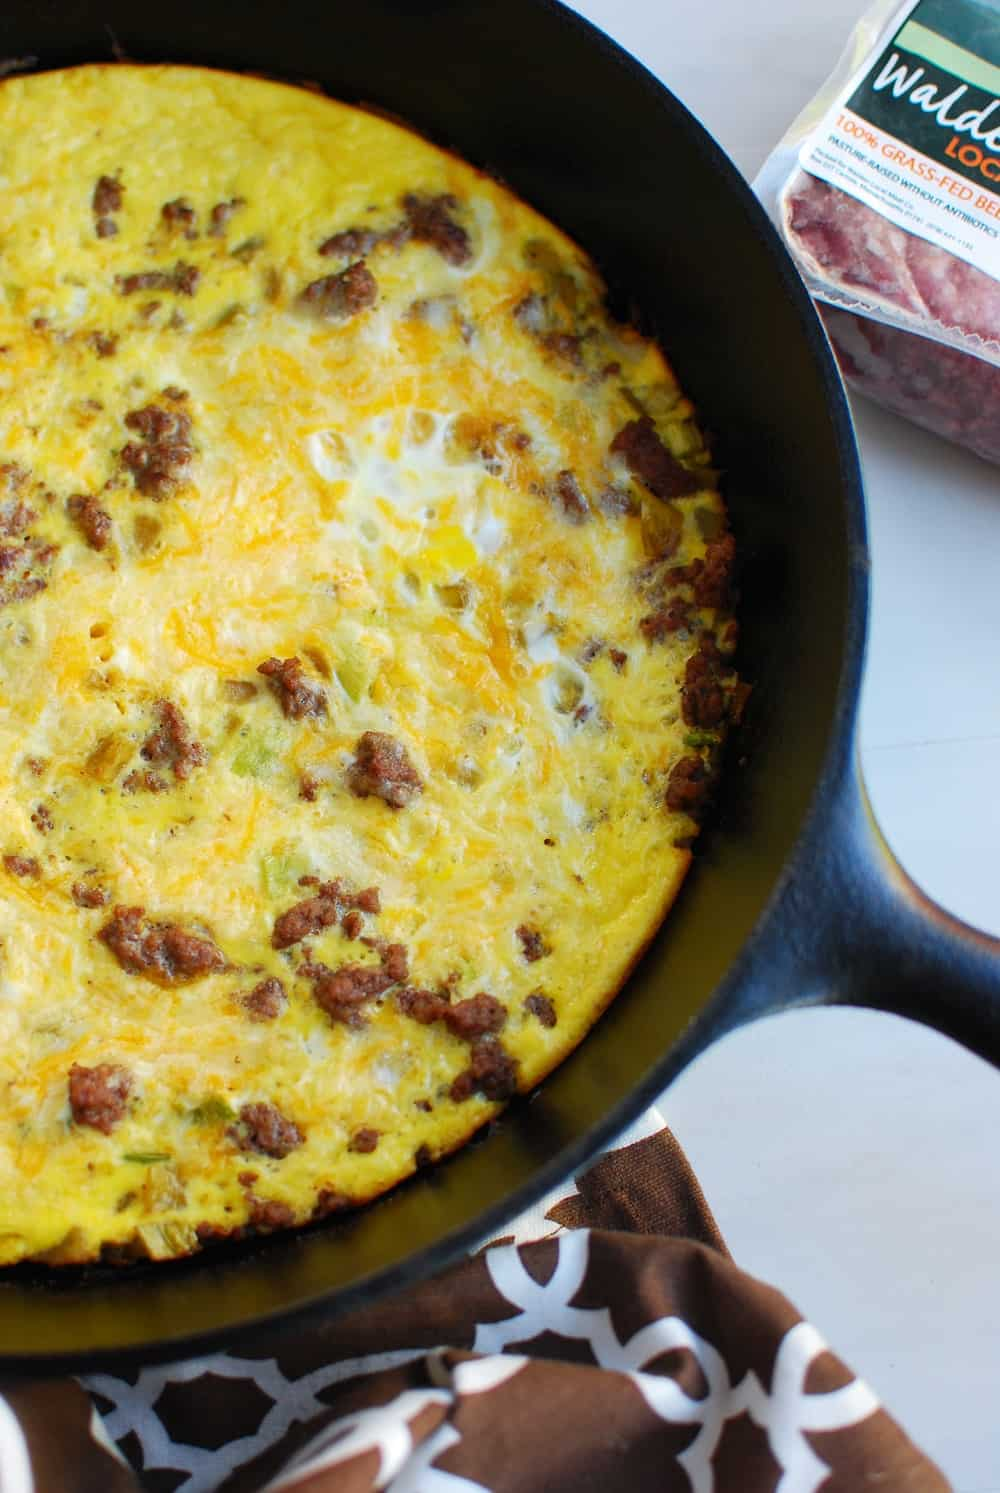 Keto frittata made with eggs, cheese, ground beef, scallions, and chiles